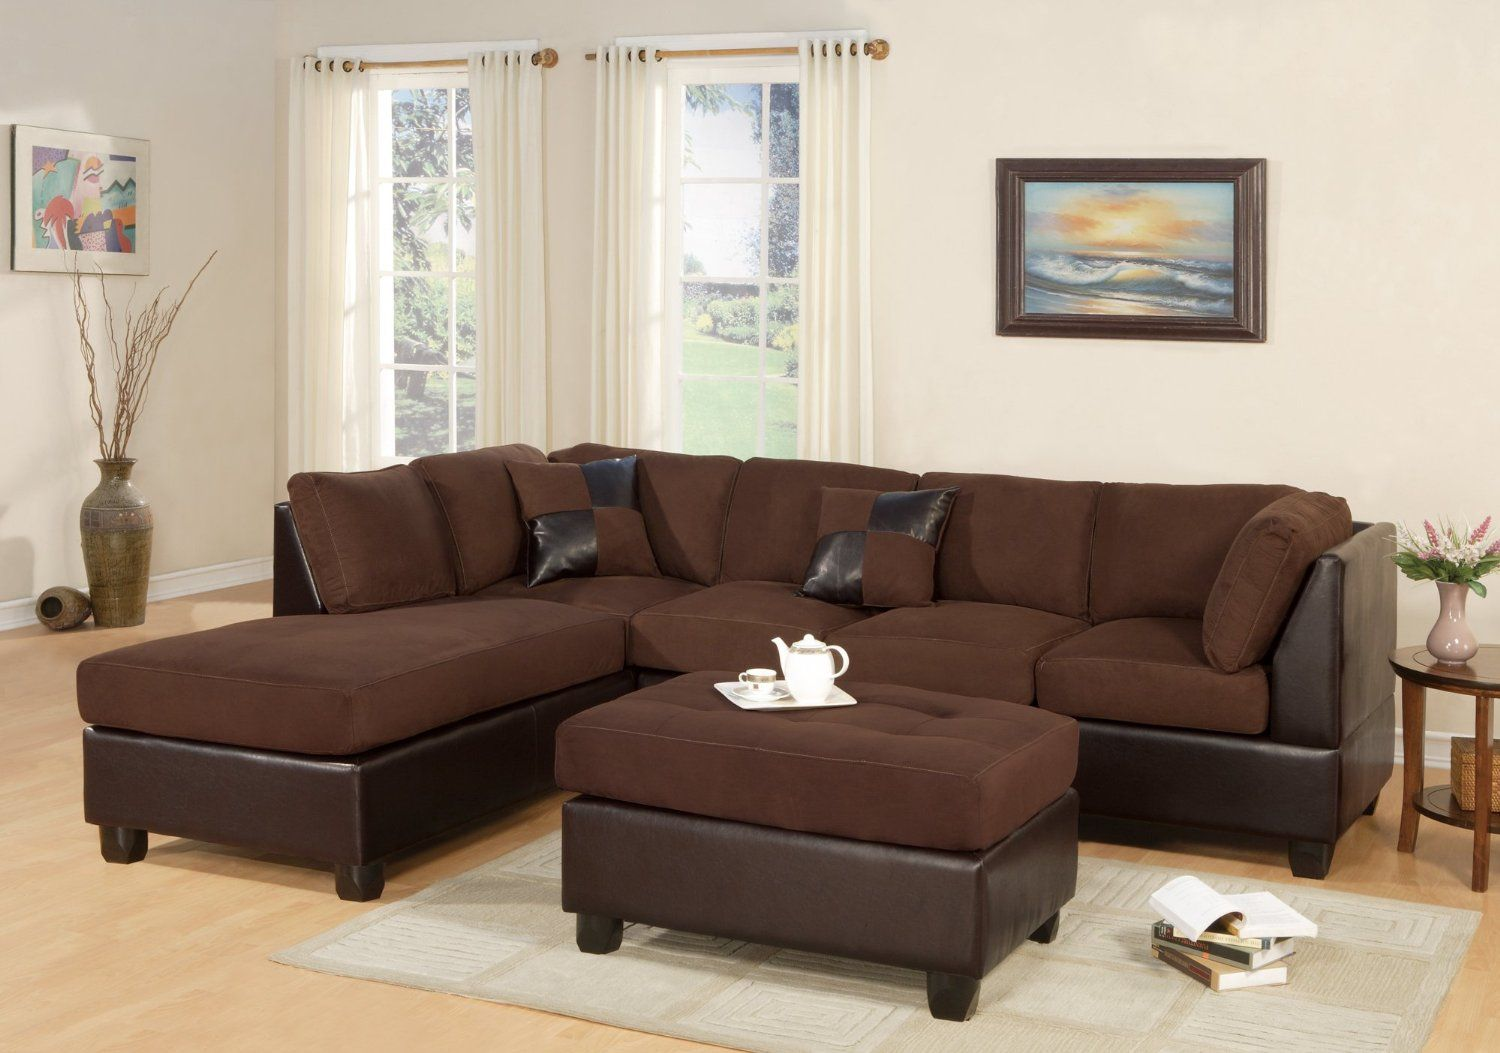 Bobkona Hungtinton Microfiber/Faux Leather 3 Piece Sectional Sofa Set,  Chocolate